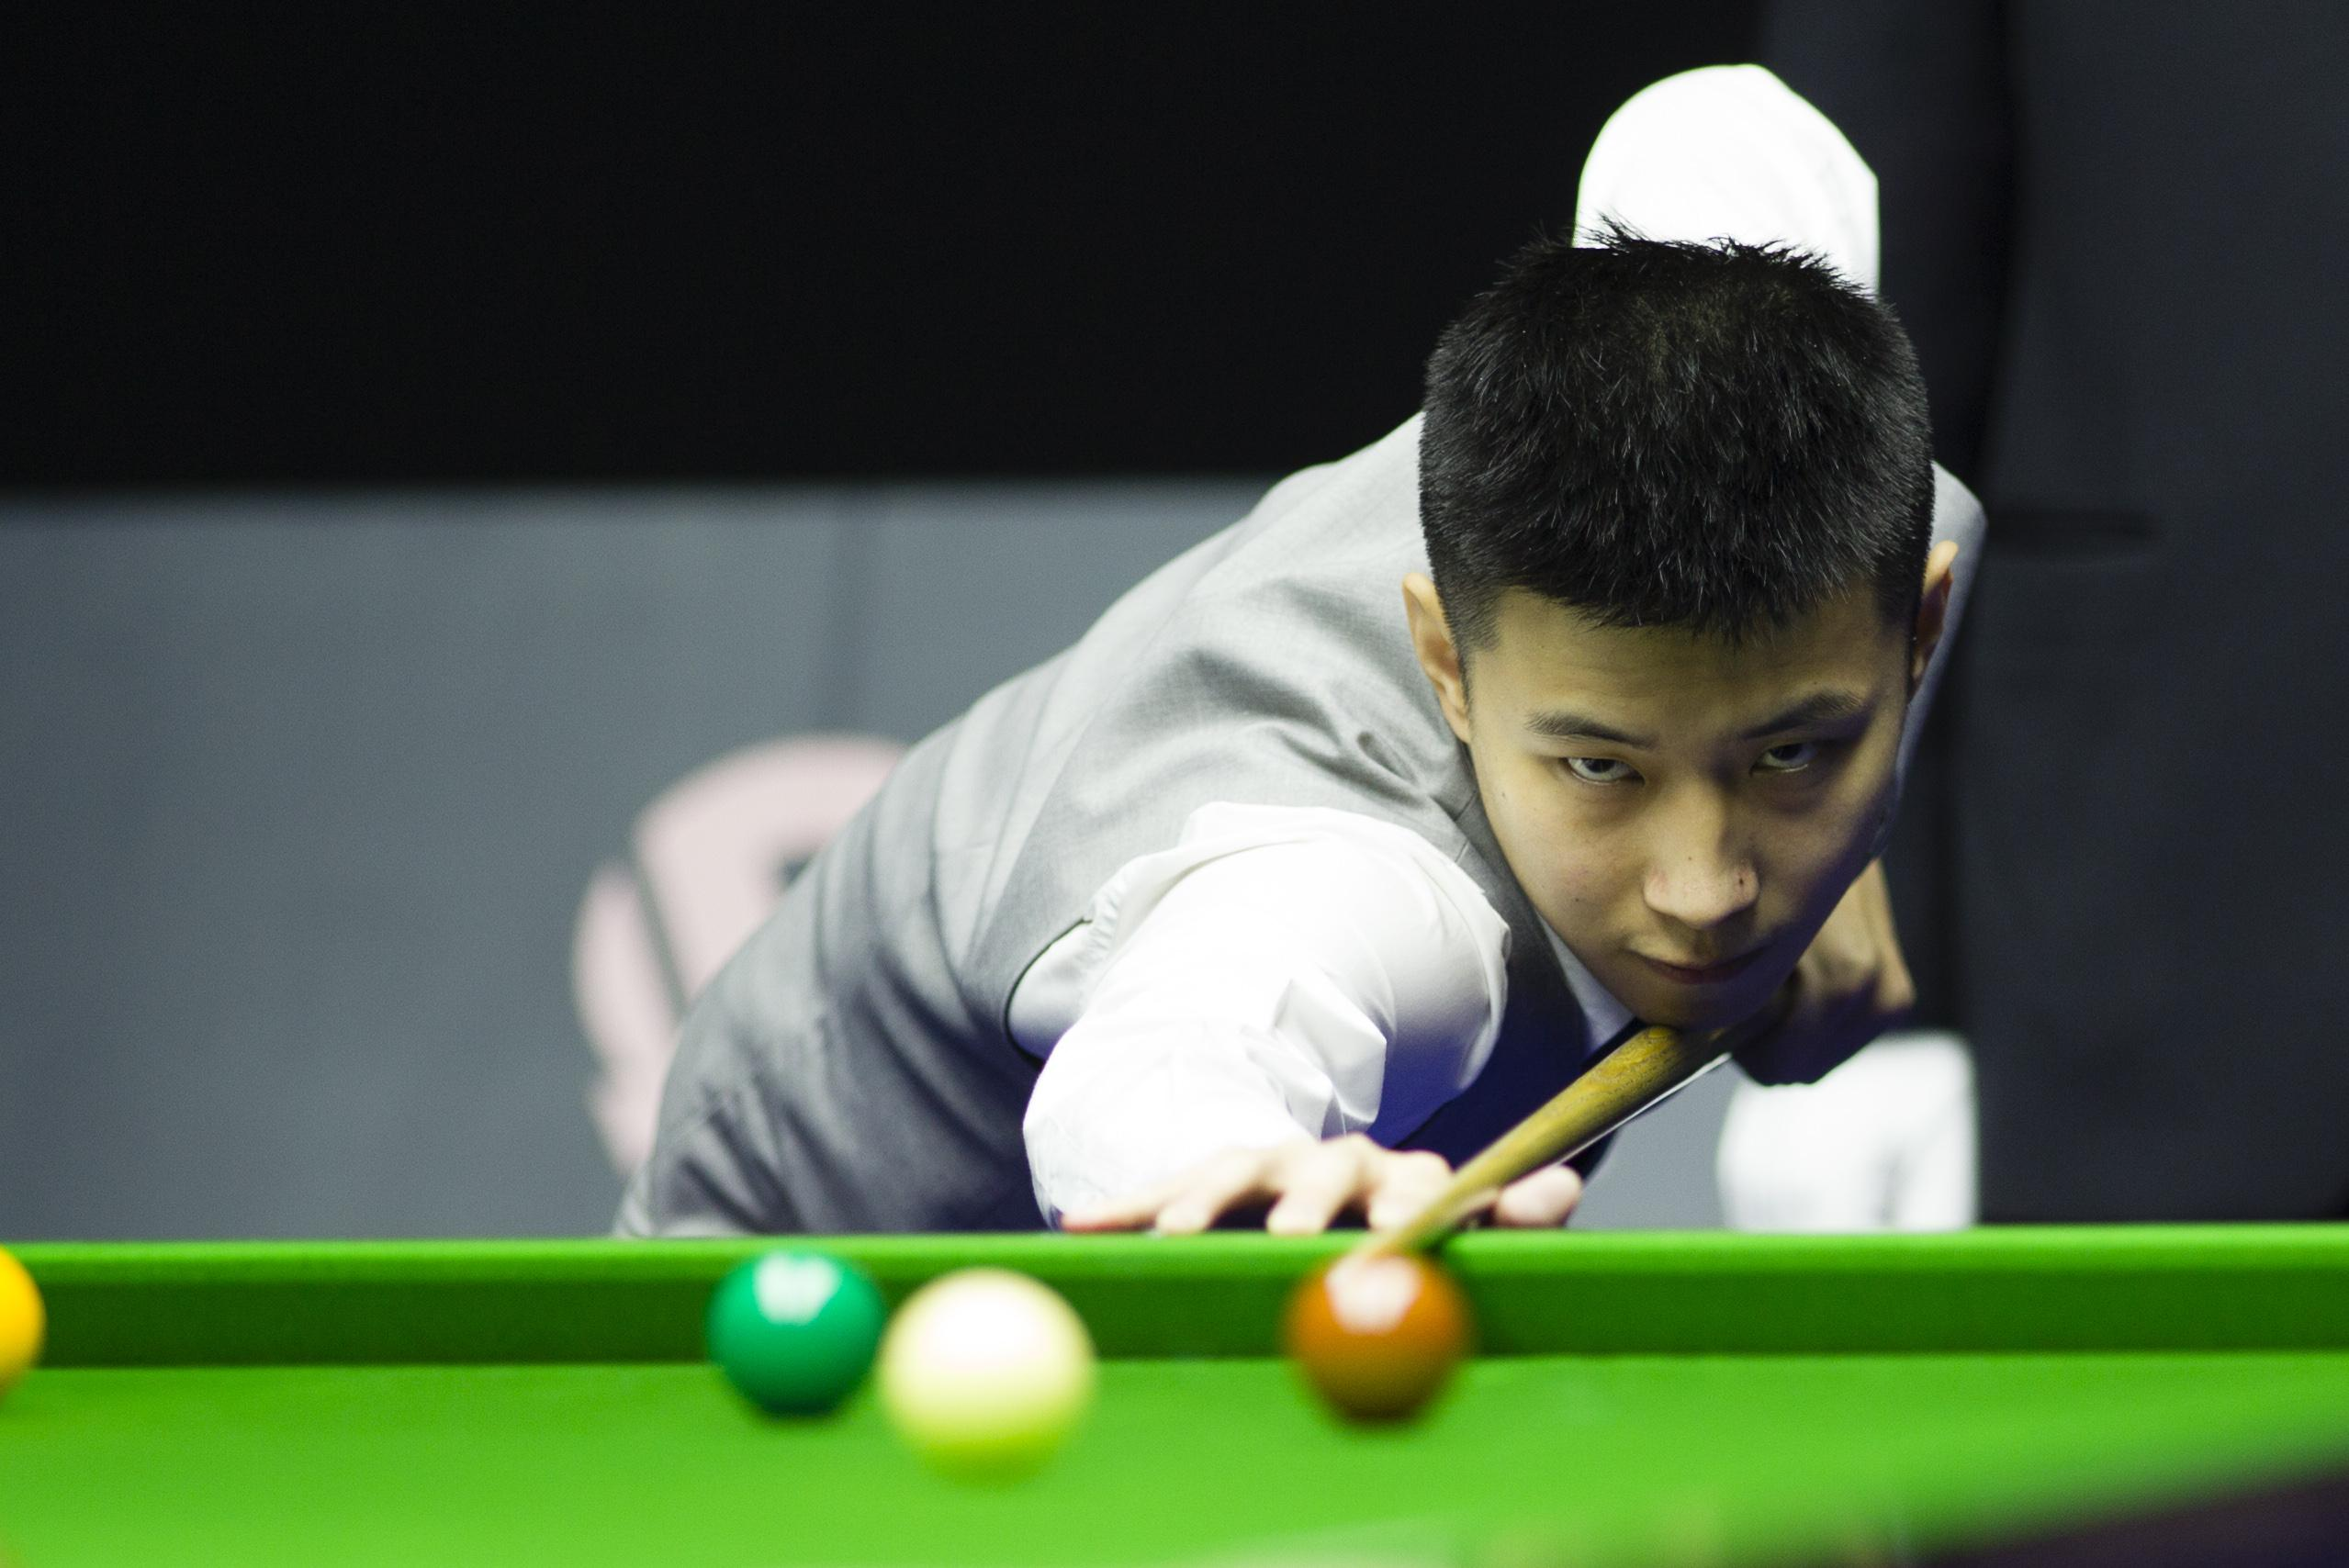 Jones was due to take on Zhao Xintong in a qualifying round match for the International Championship in China on Friday